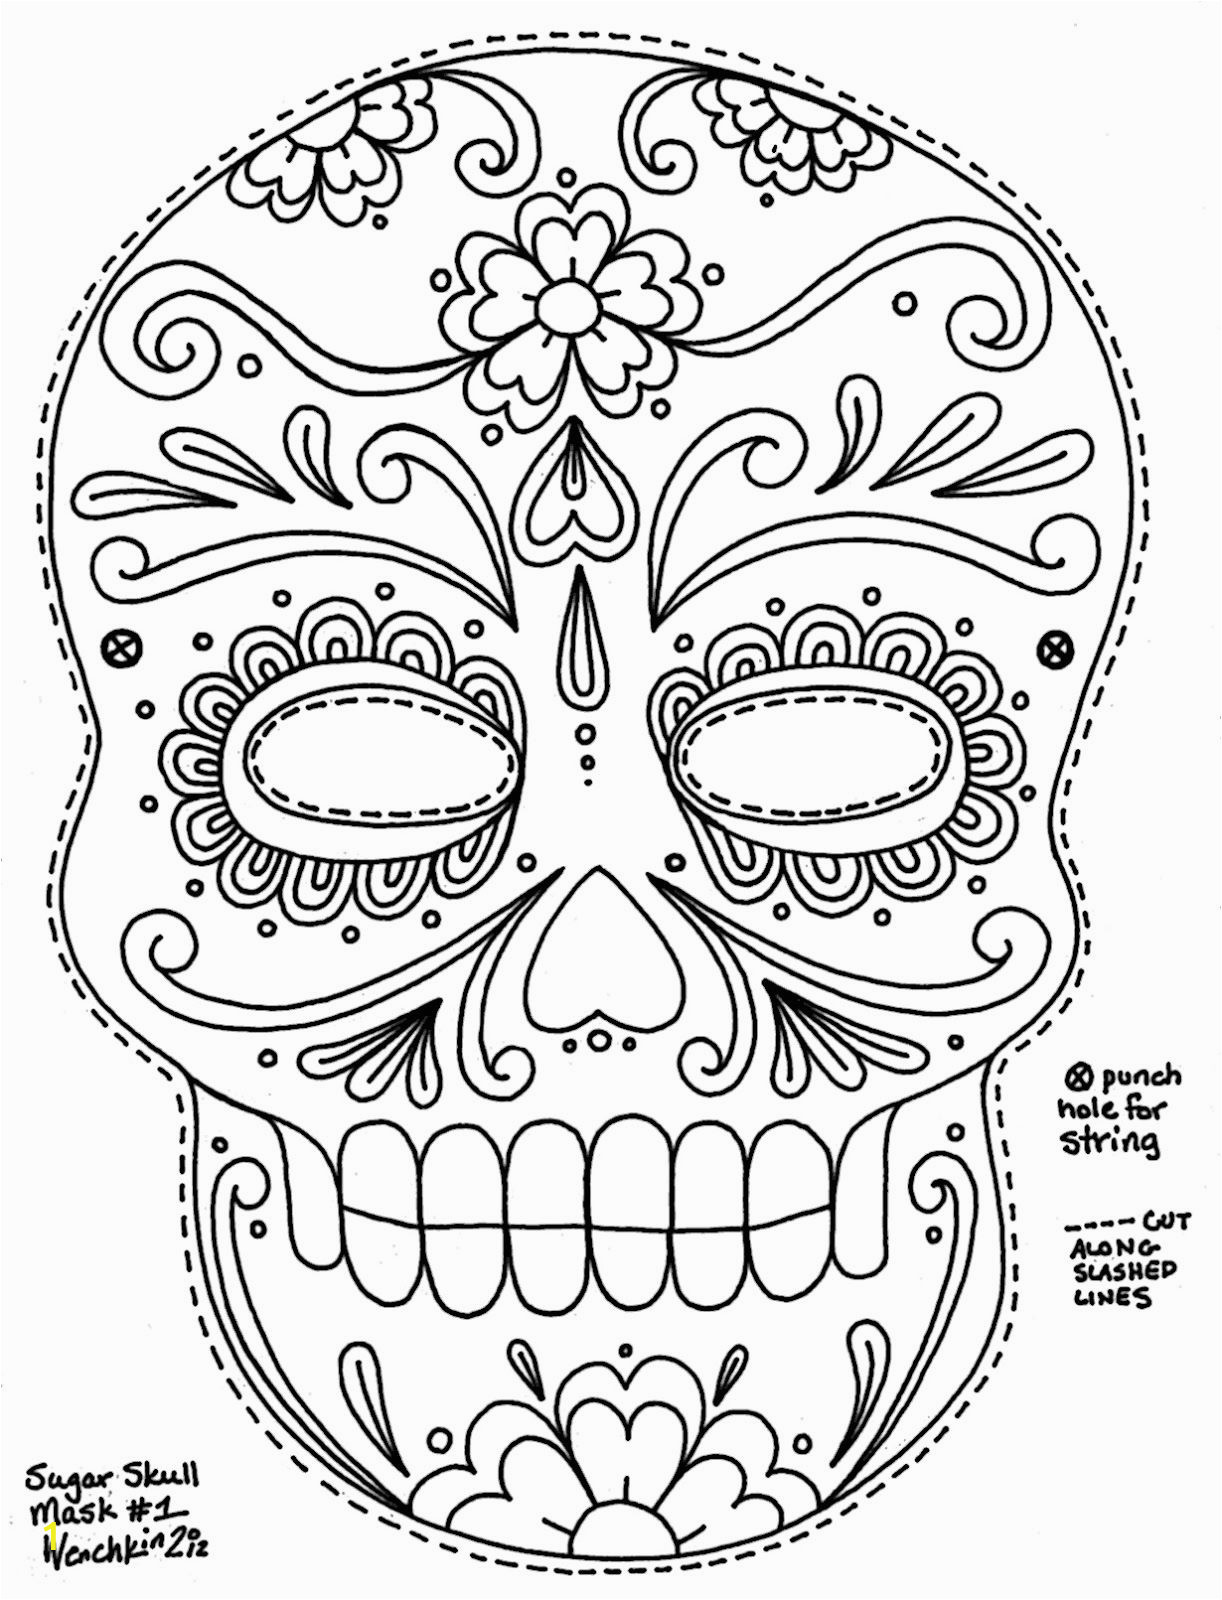 Skeleton Mask Coloring Page Yucca Flats N M Wenchkin S Coloring Pages Sugar Skull